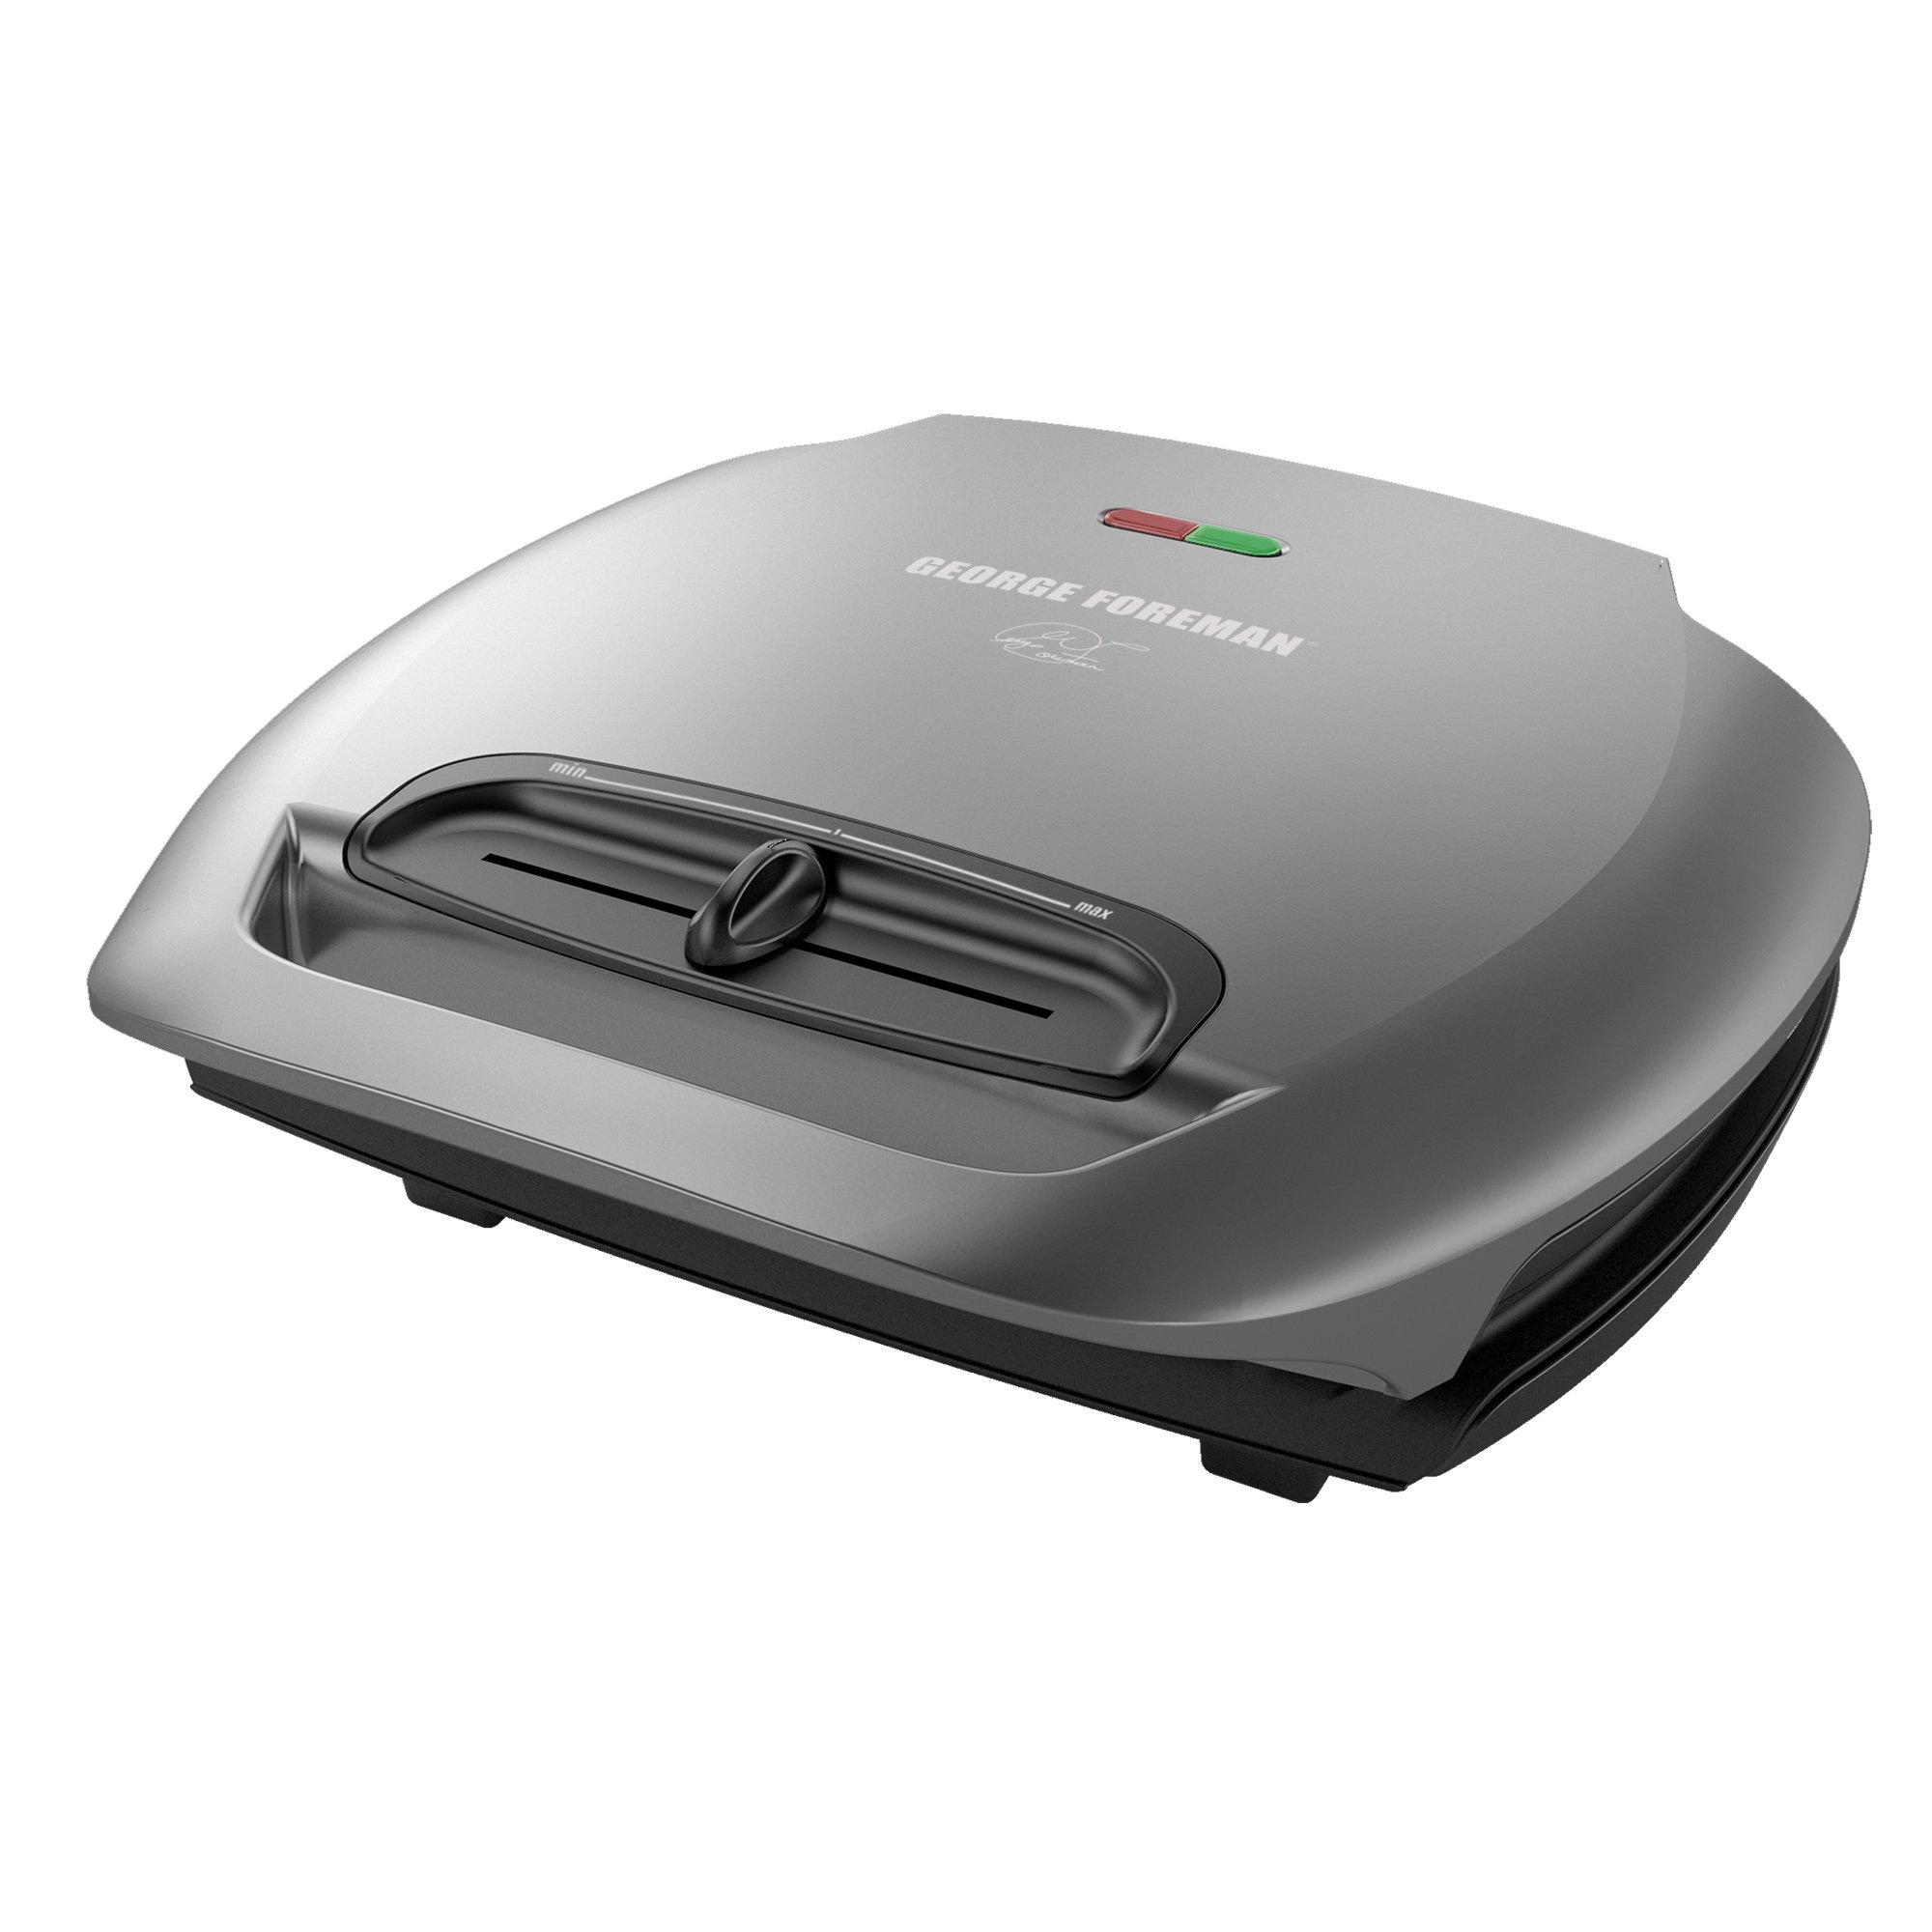 George Foreman 5-Serving Classic Plate Electric Indoor Grill and Panini Press, Platinum, GR2081HM